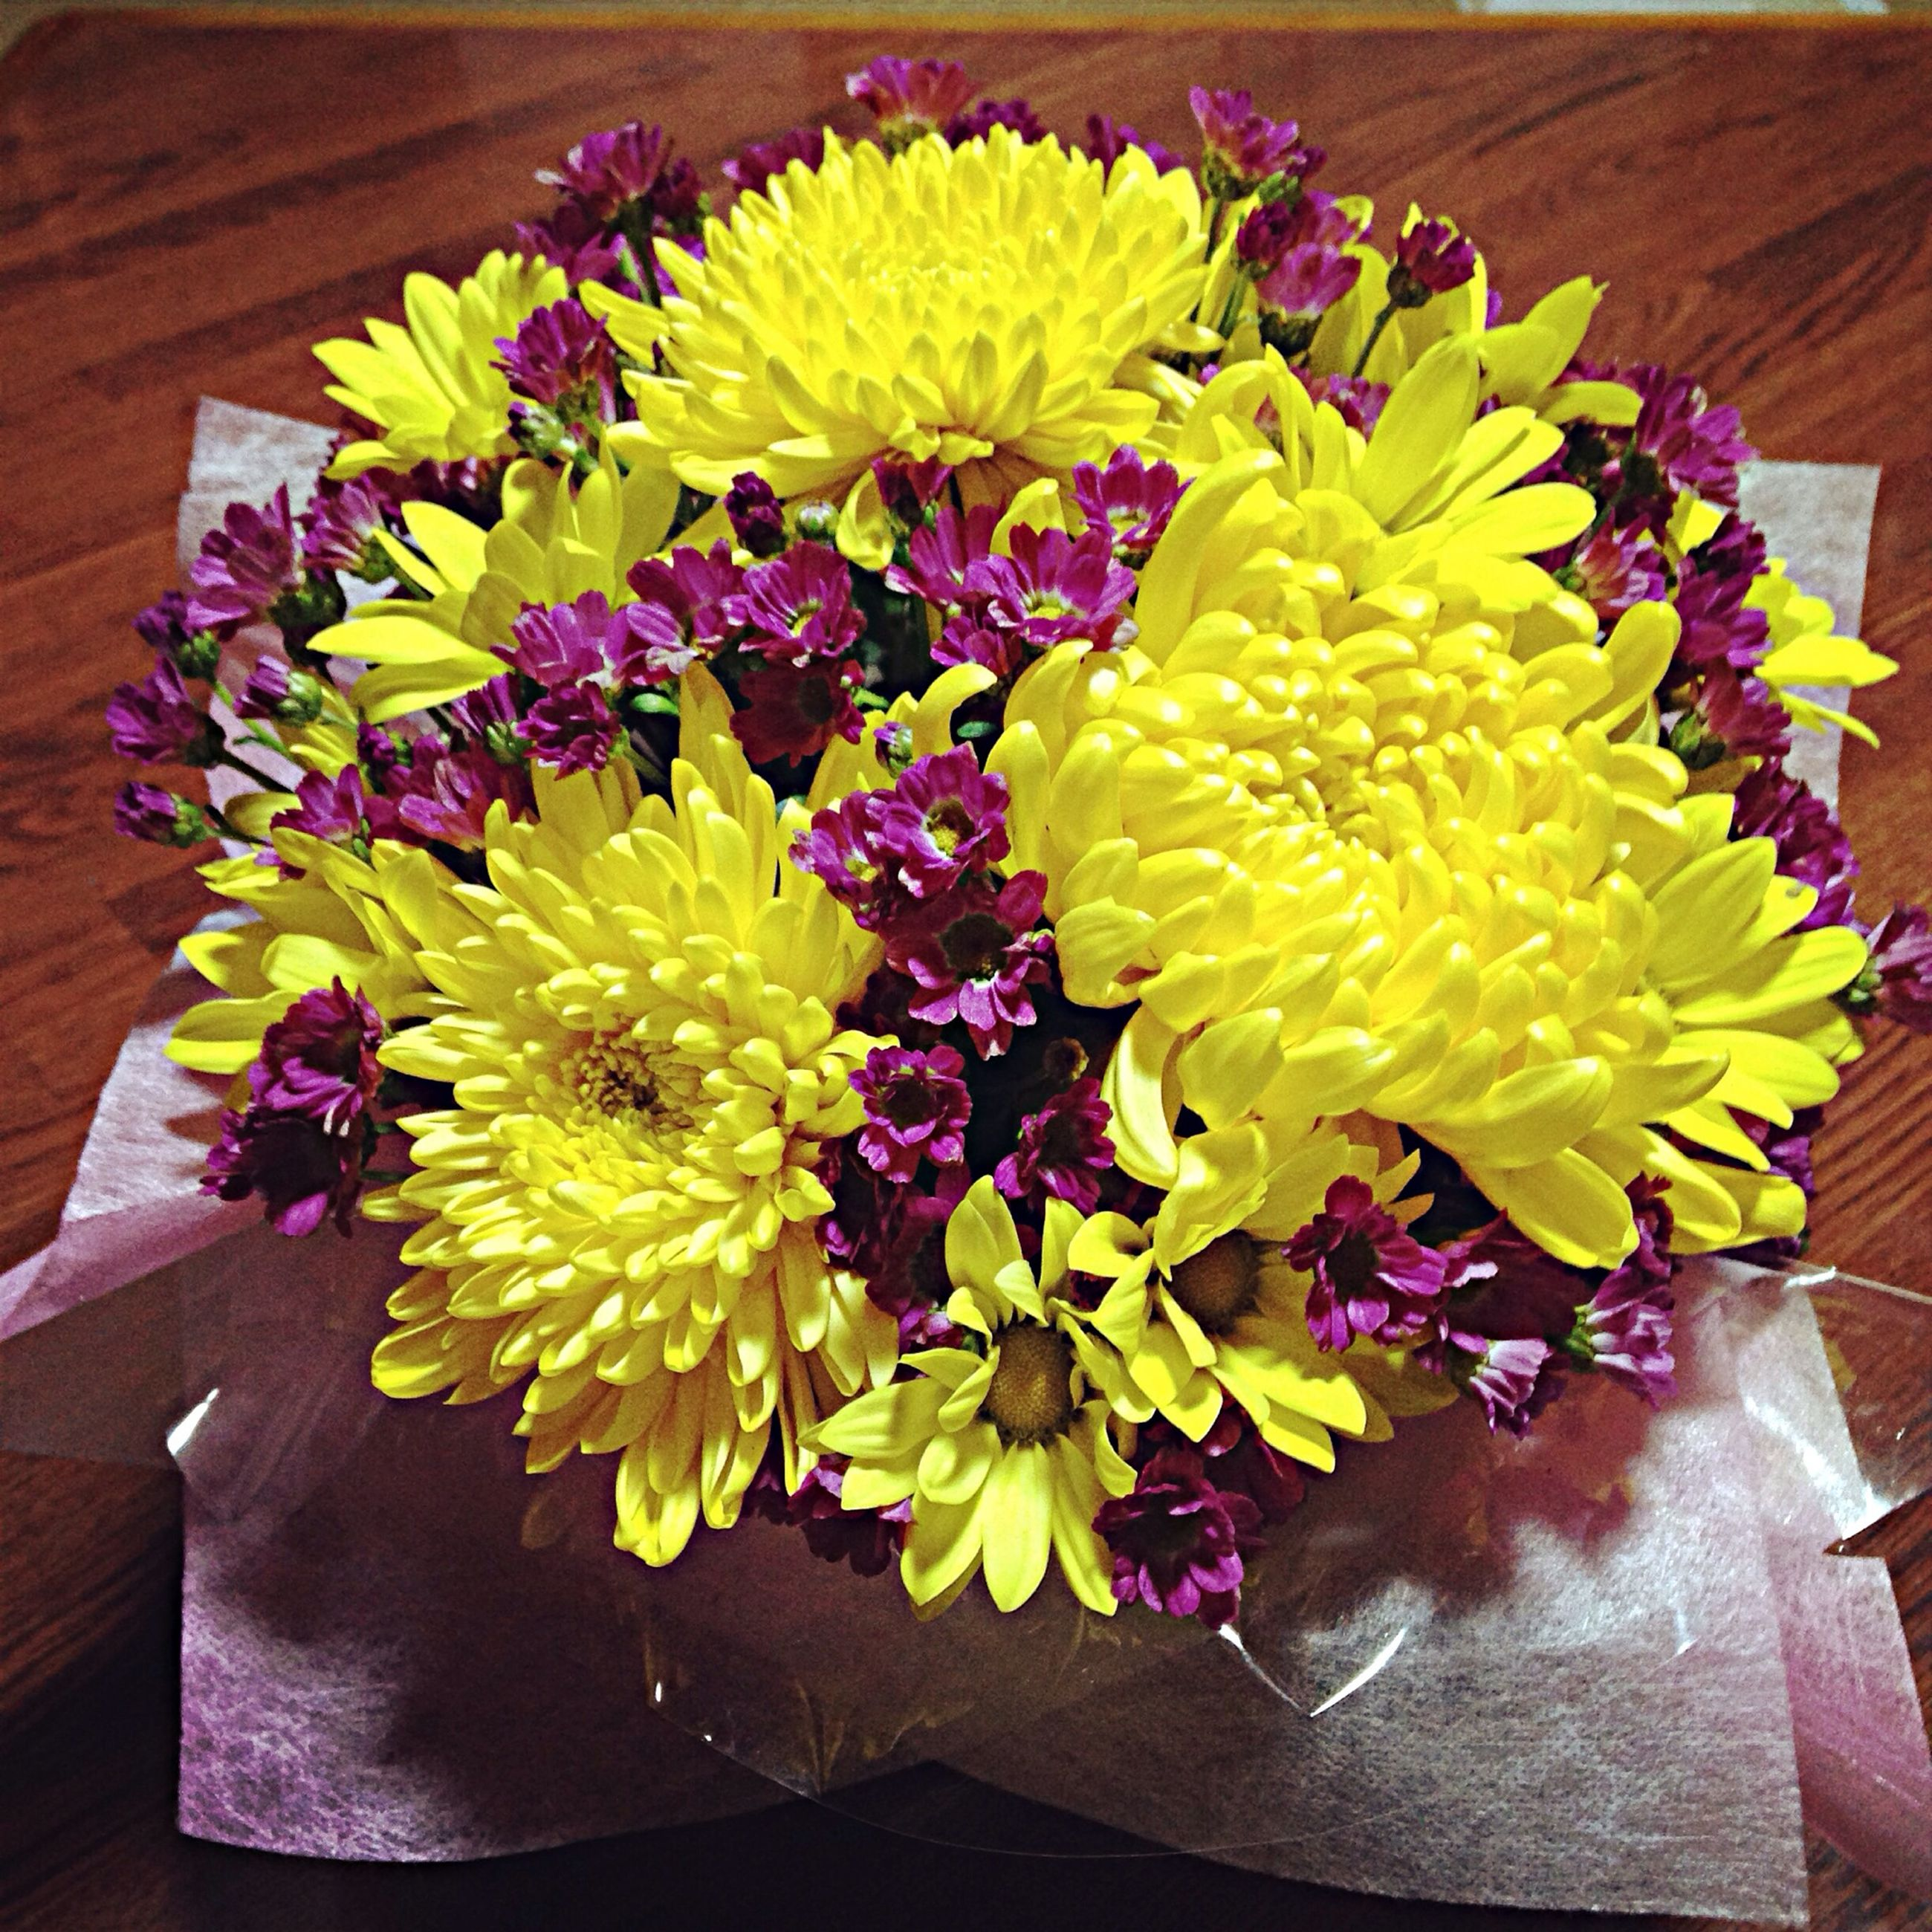 flower, yellow, fragility, freshness, flower head, petal, high angle view, nature, beauty in nature, gerbera daisy, indoors, close-up, multi colored, no people, flower arrangement, chrysanthemum, bouquet, dahlia, day